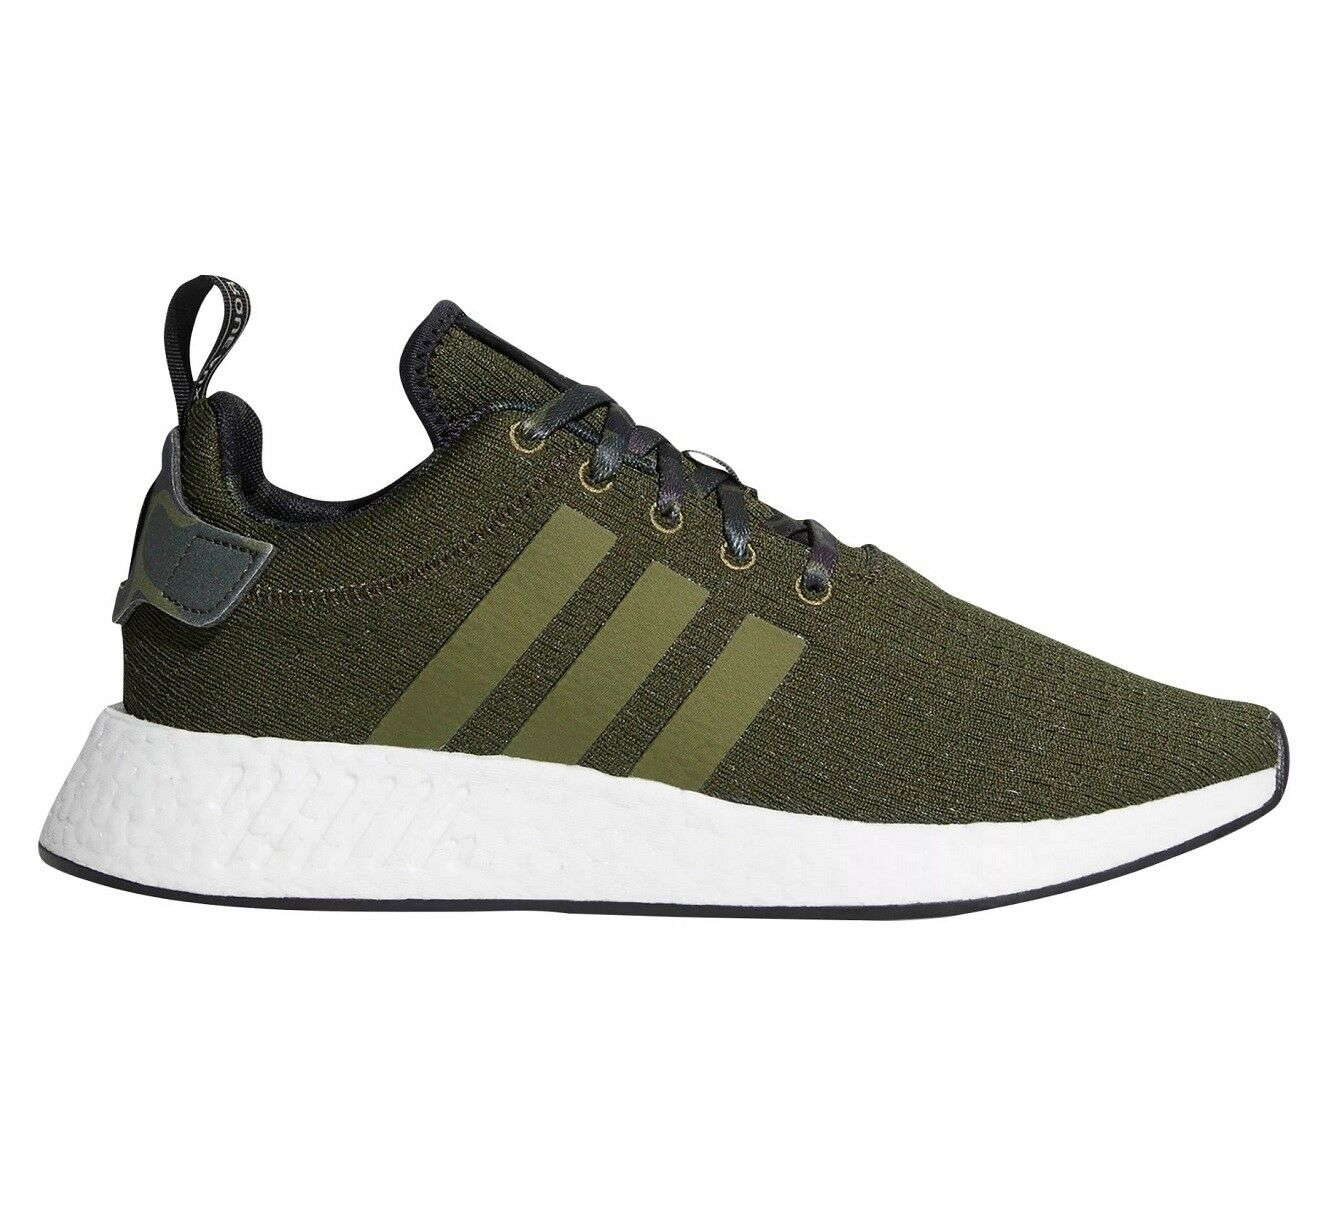 308f07c39b Adidas NMD Mens B22630 Cargo Green Boost Knit Athletic shoes Size 11 R2  Olive nuqgru4226-Athletic Shoes